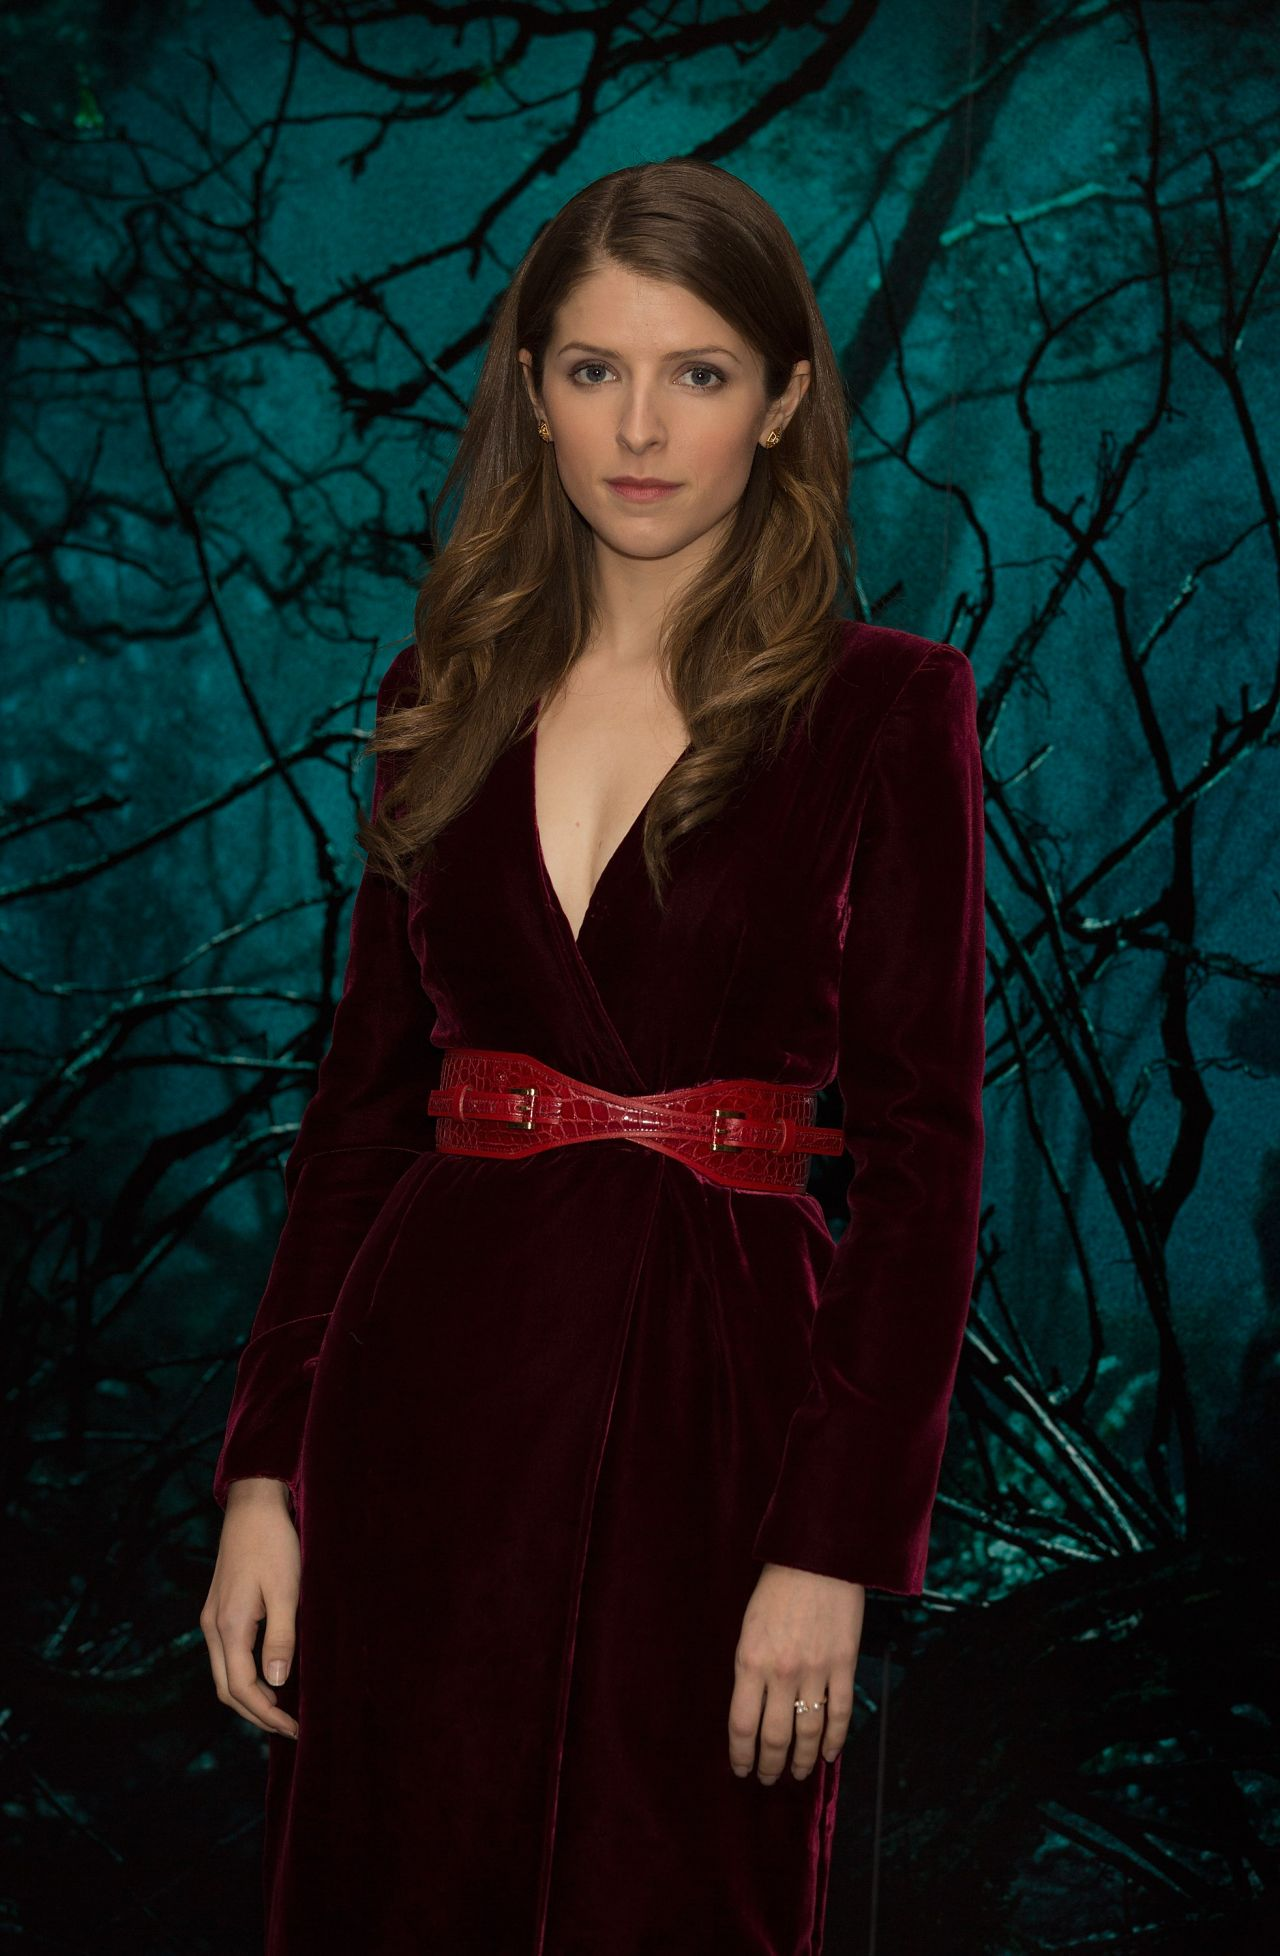 anna-kendrick-into-the-woods-photocall-in-london_2-1